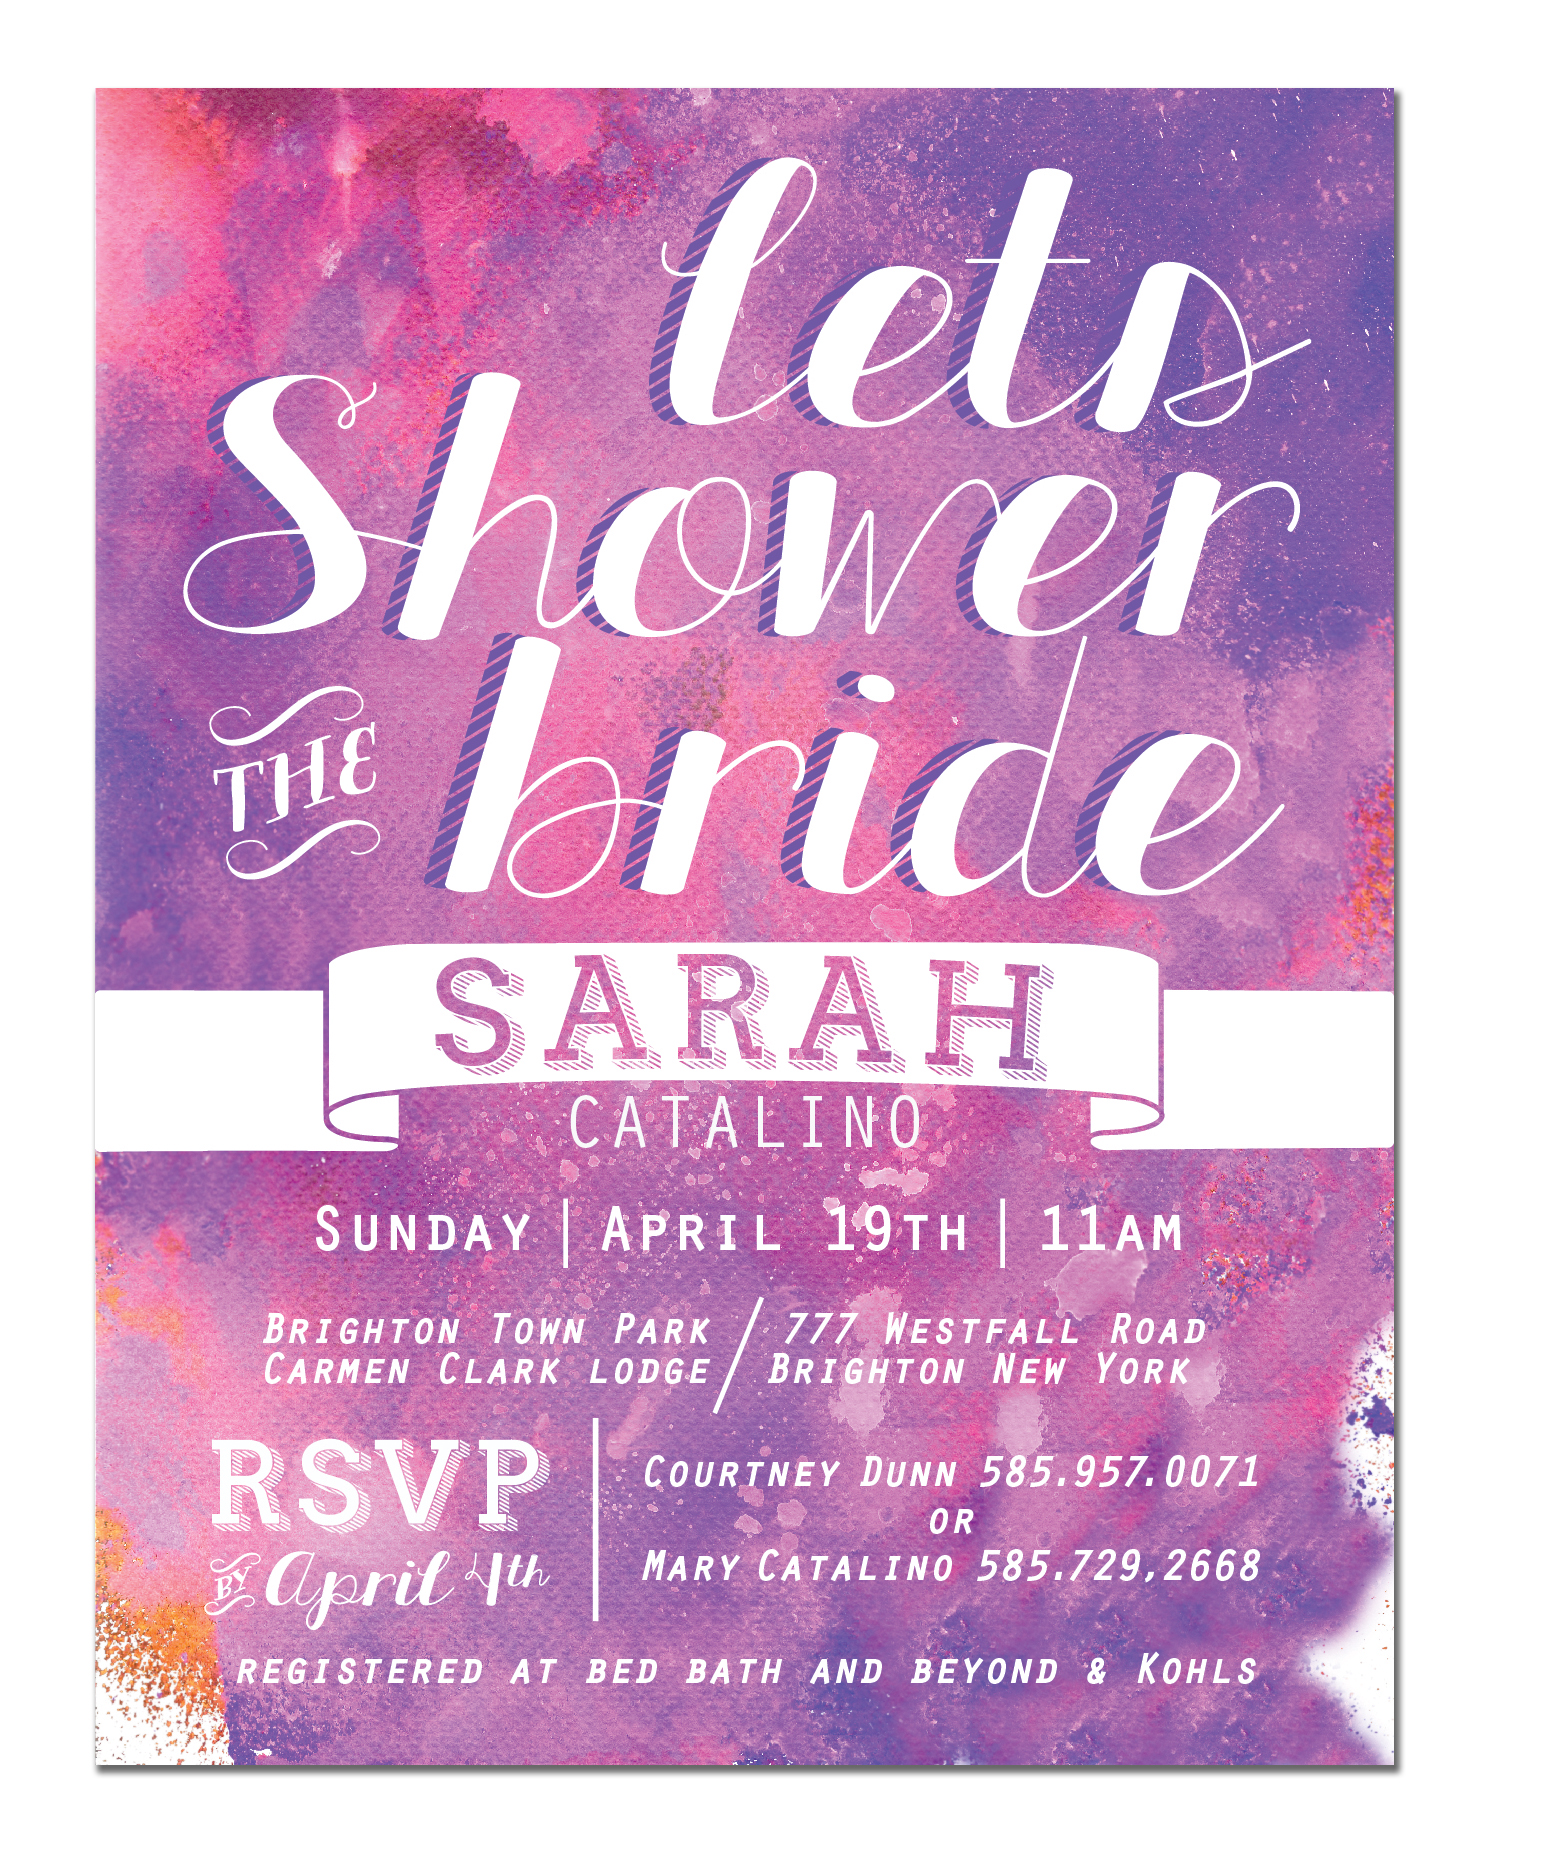 Sarahs Shower Invite